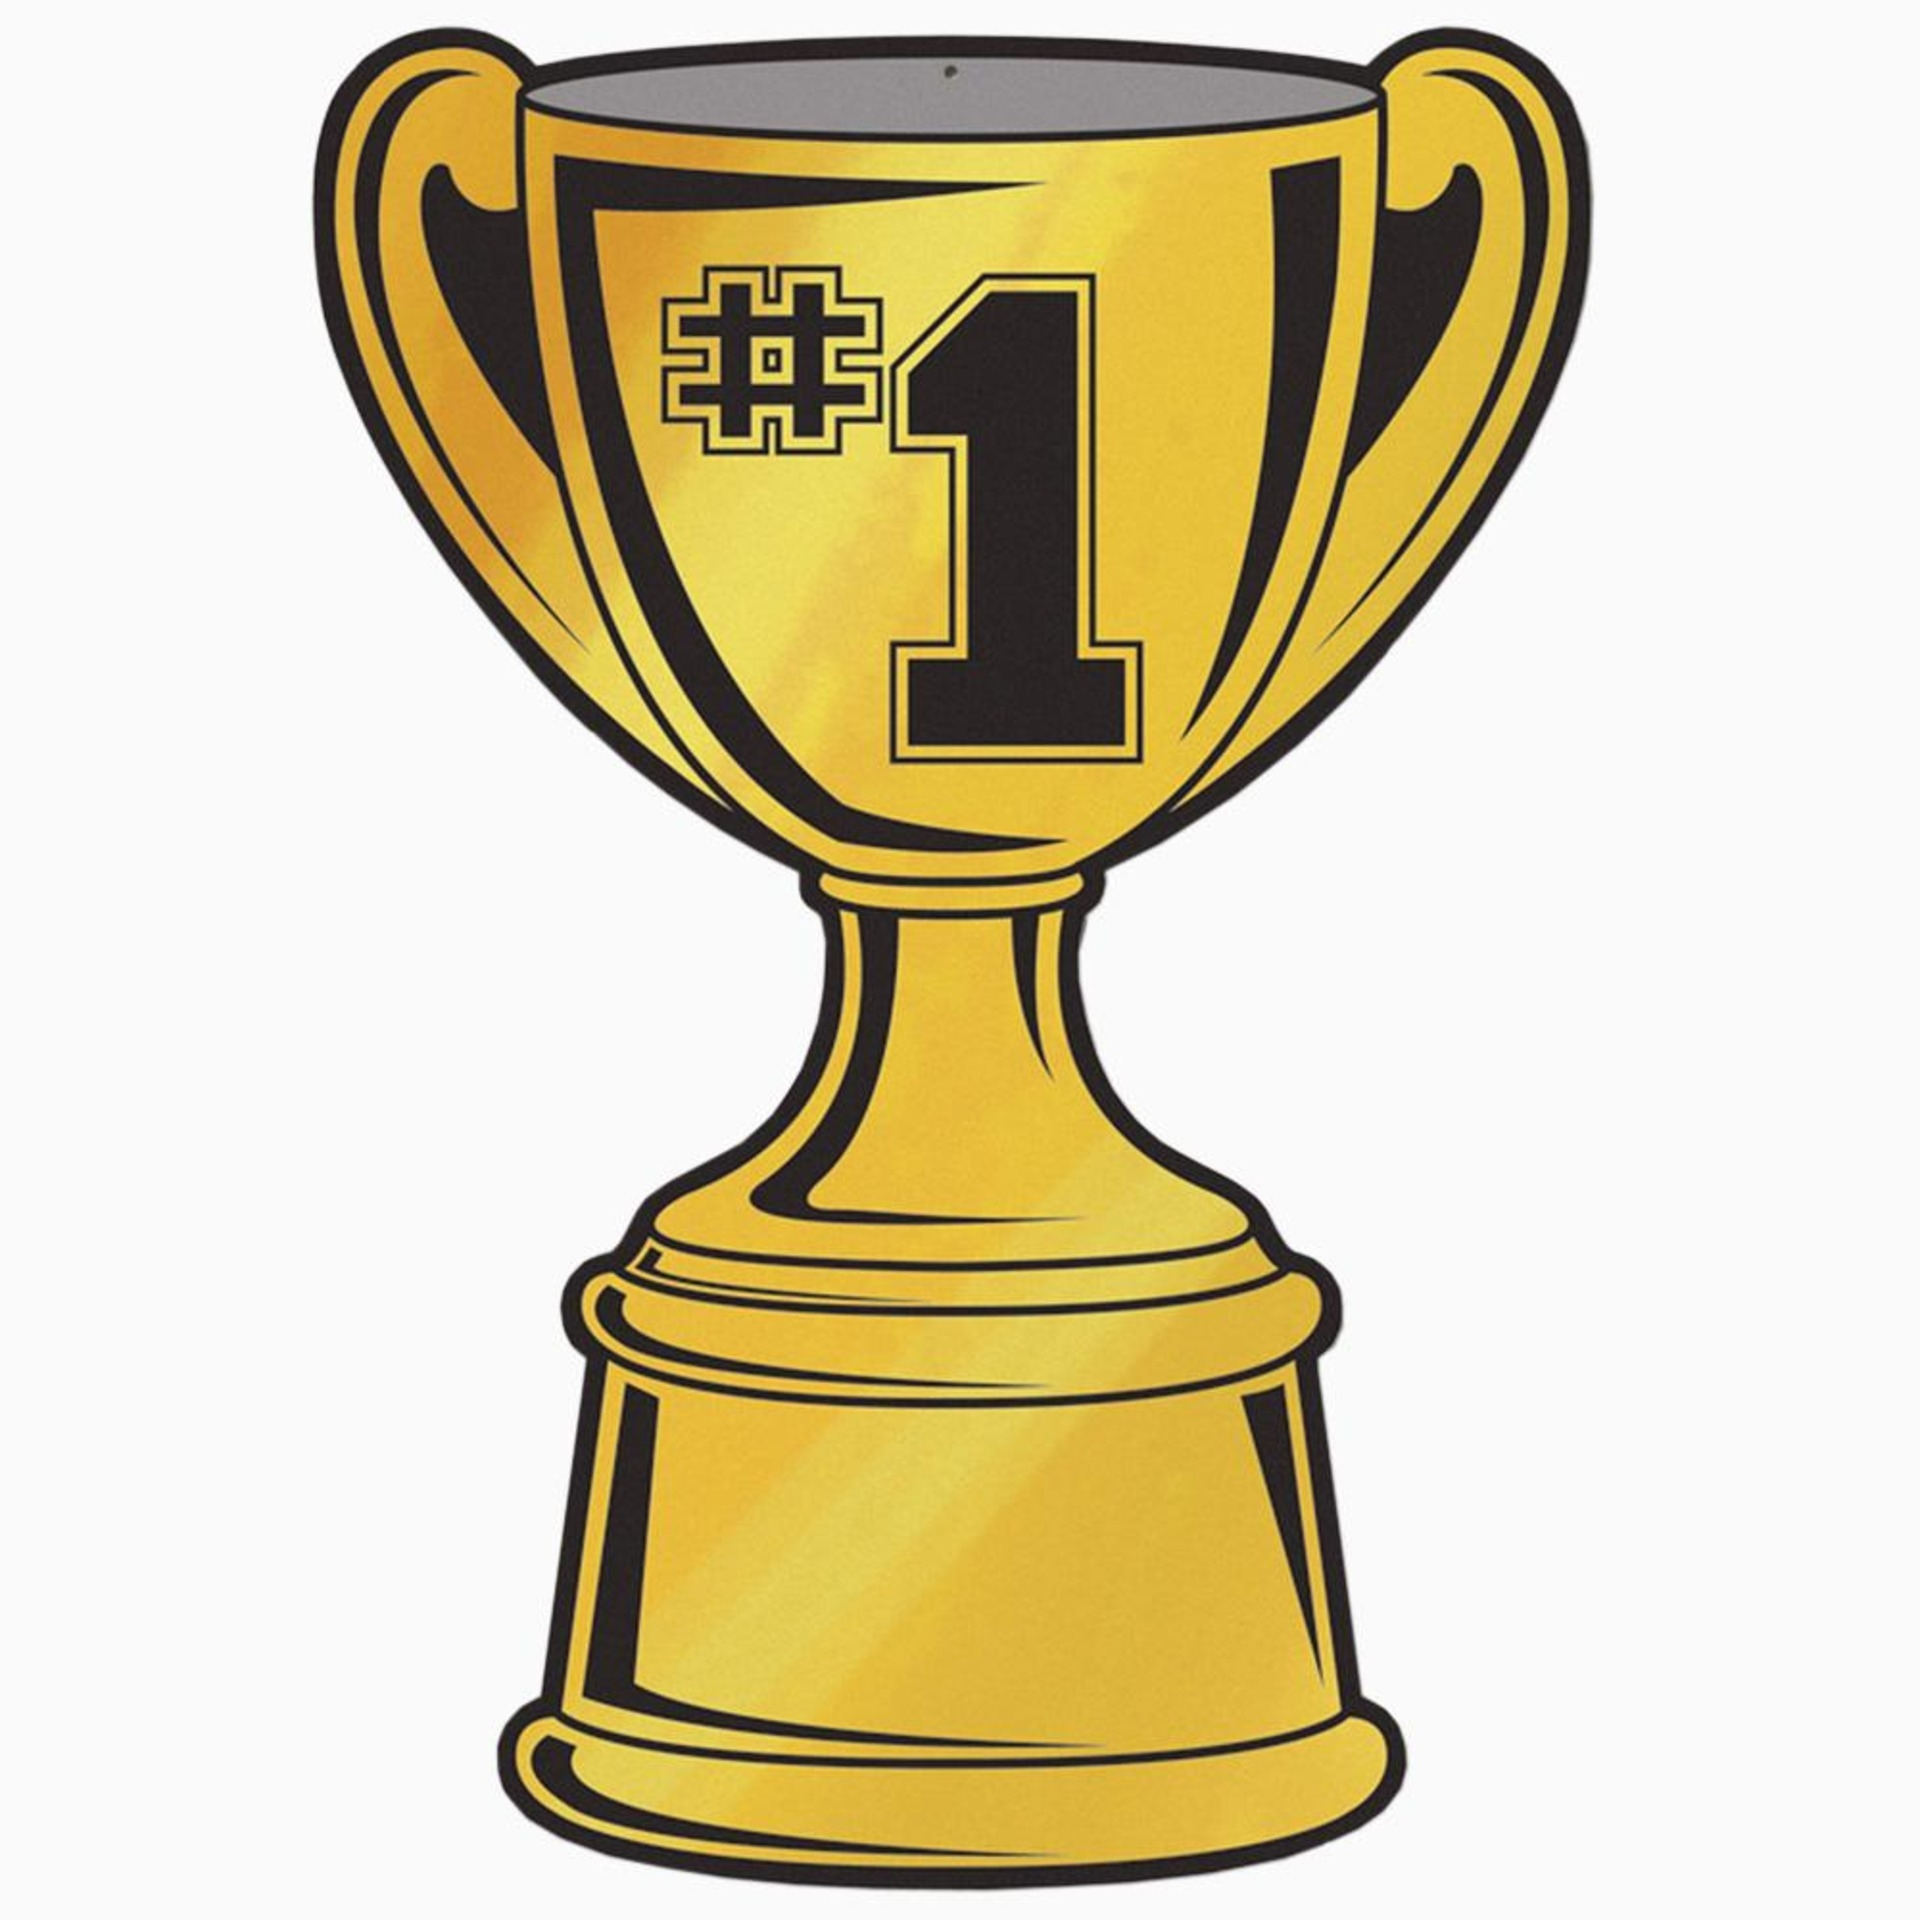 Award clipart trophy. Free topplabs org best